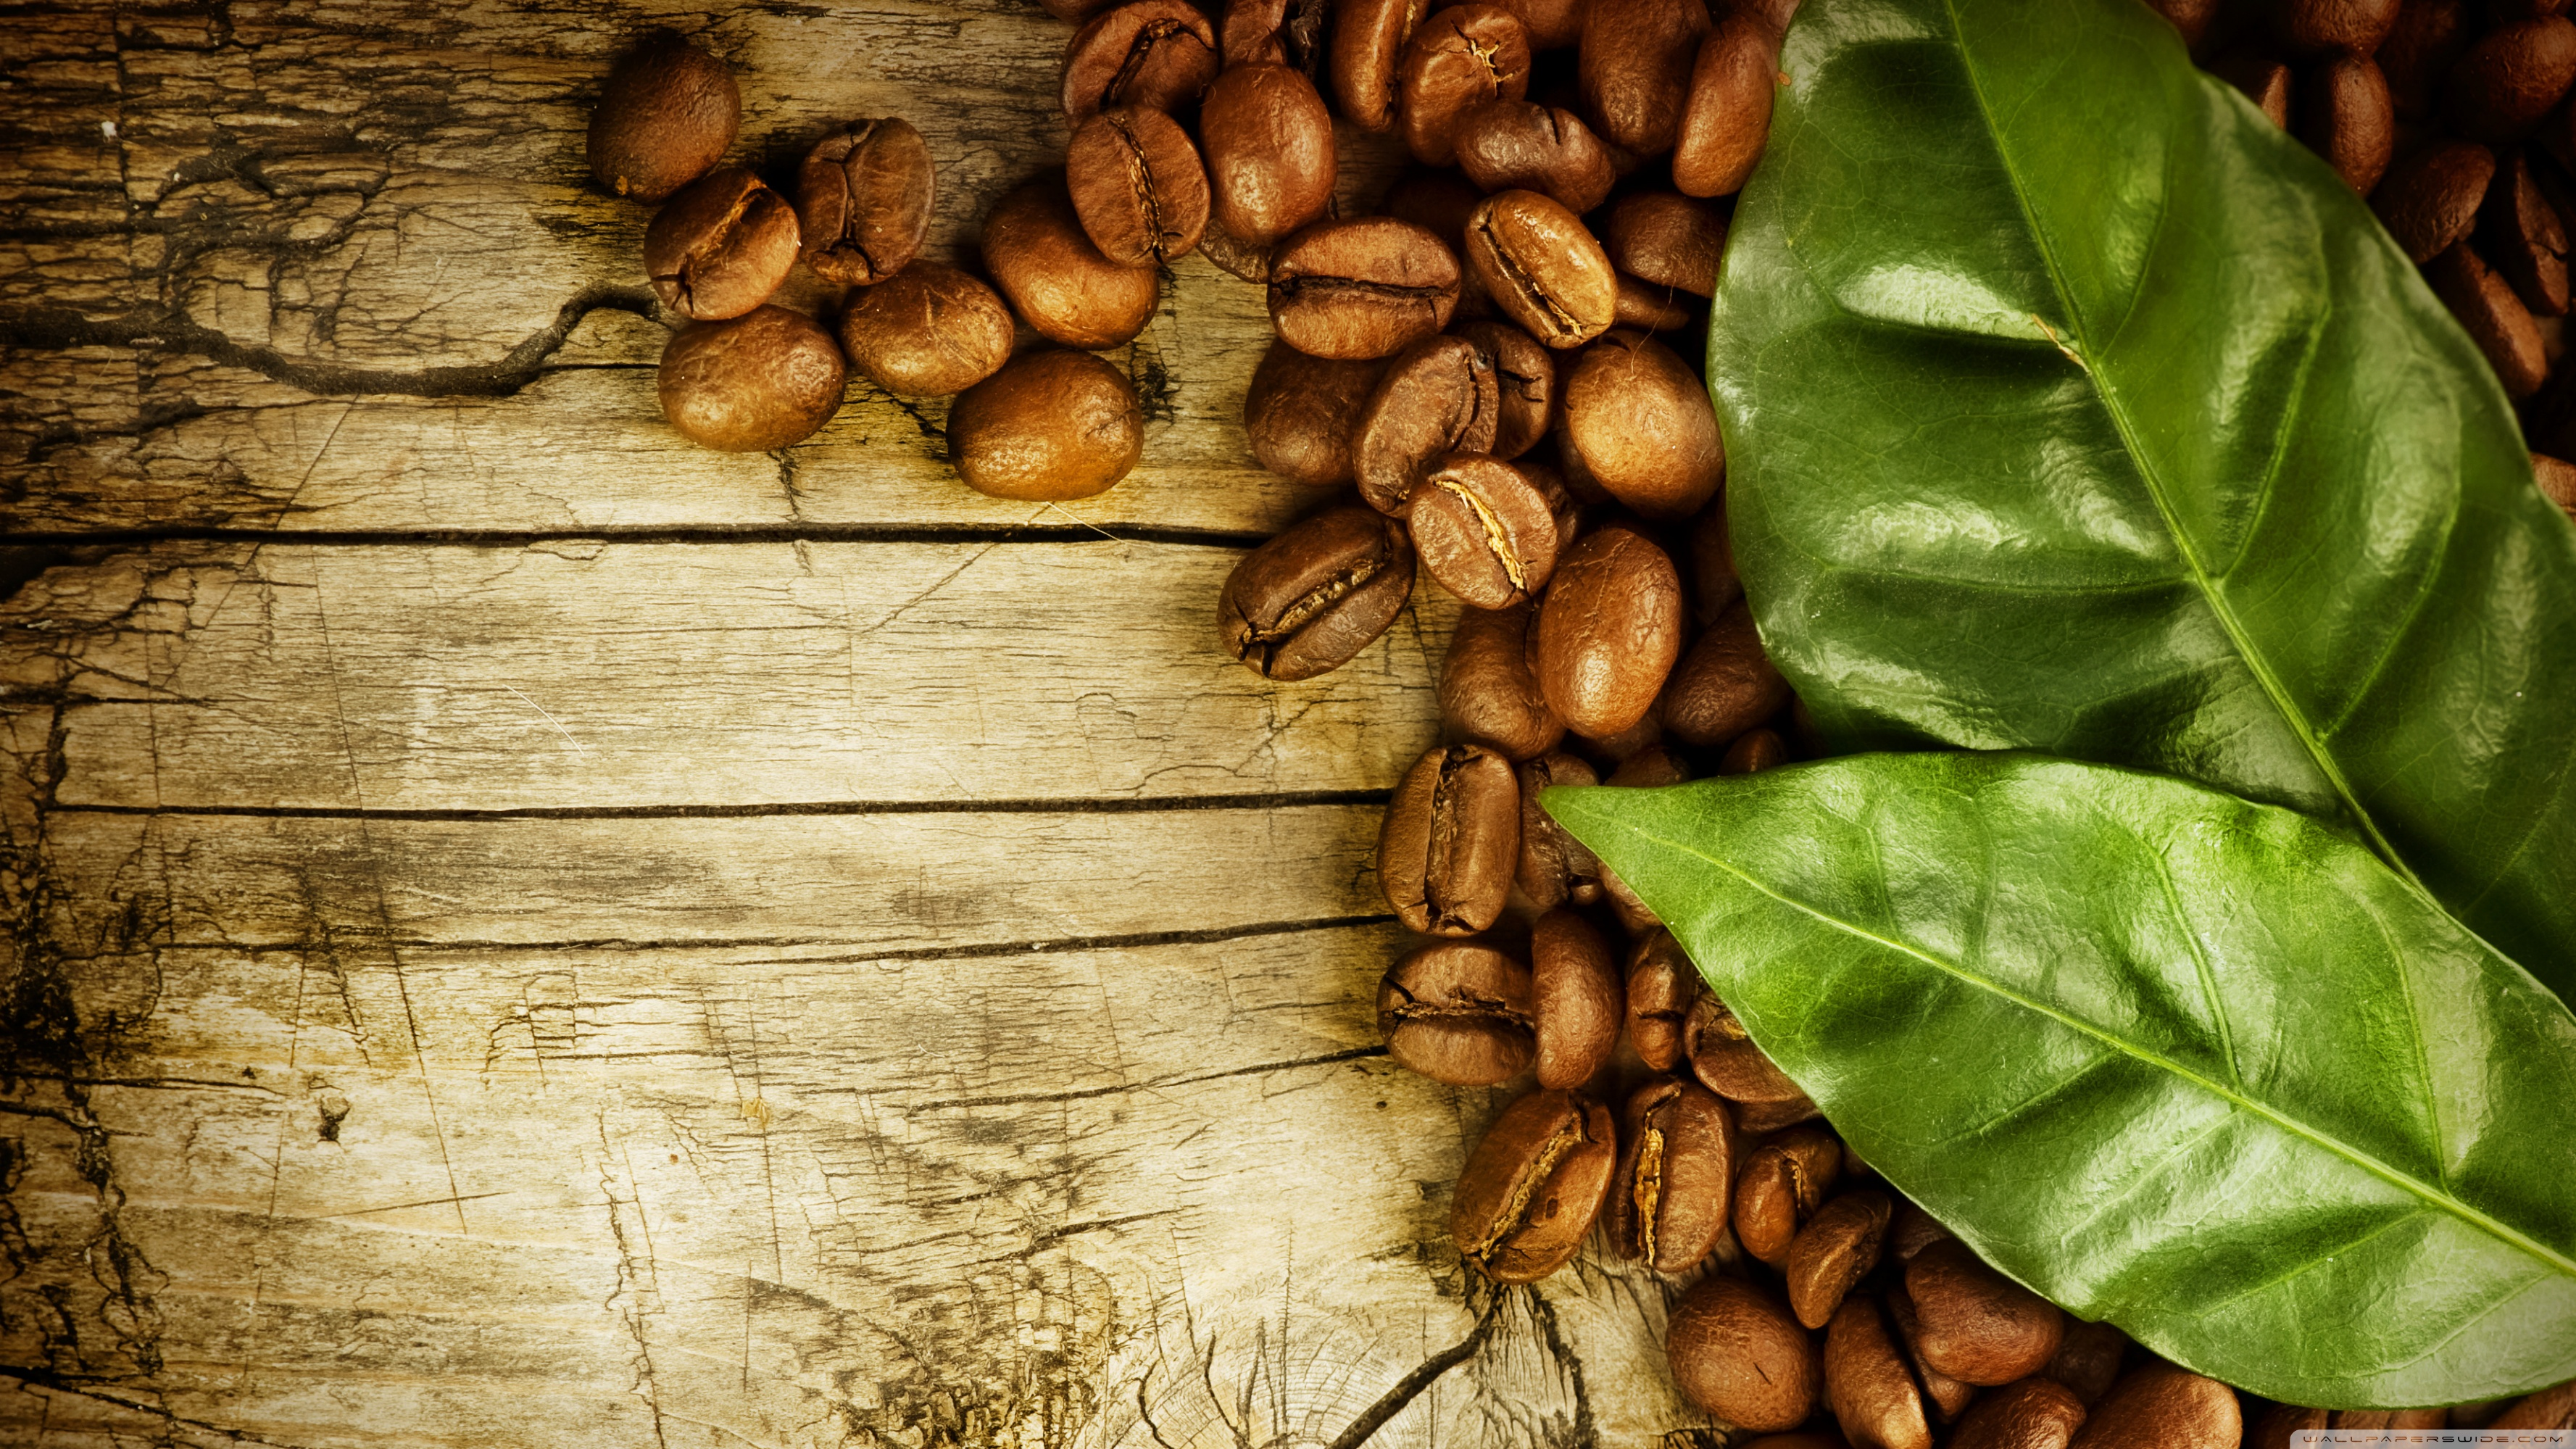 coffee_beans_and_leaves-wallpaper-3554x1999.jpg